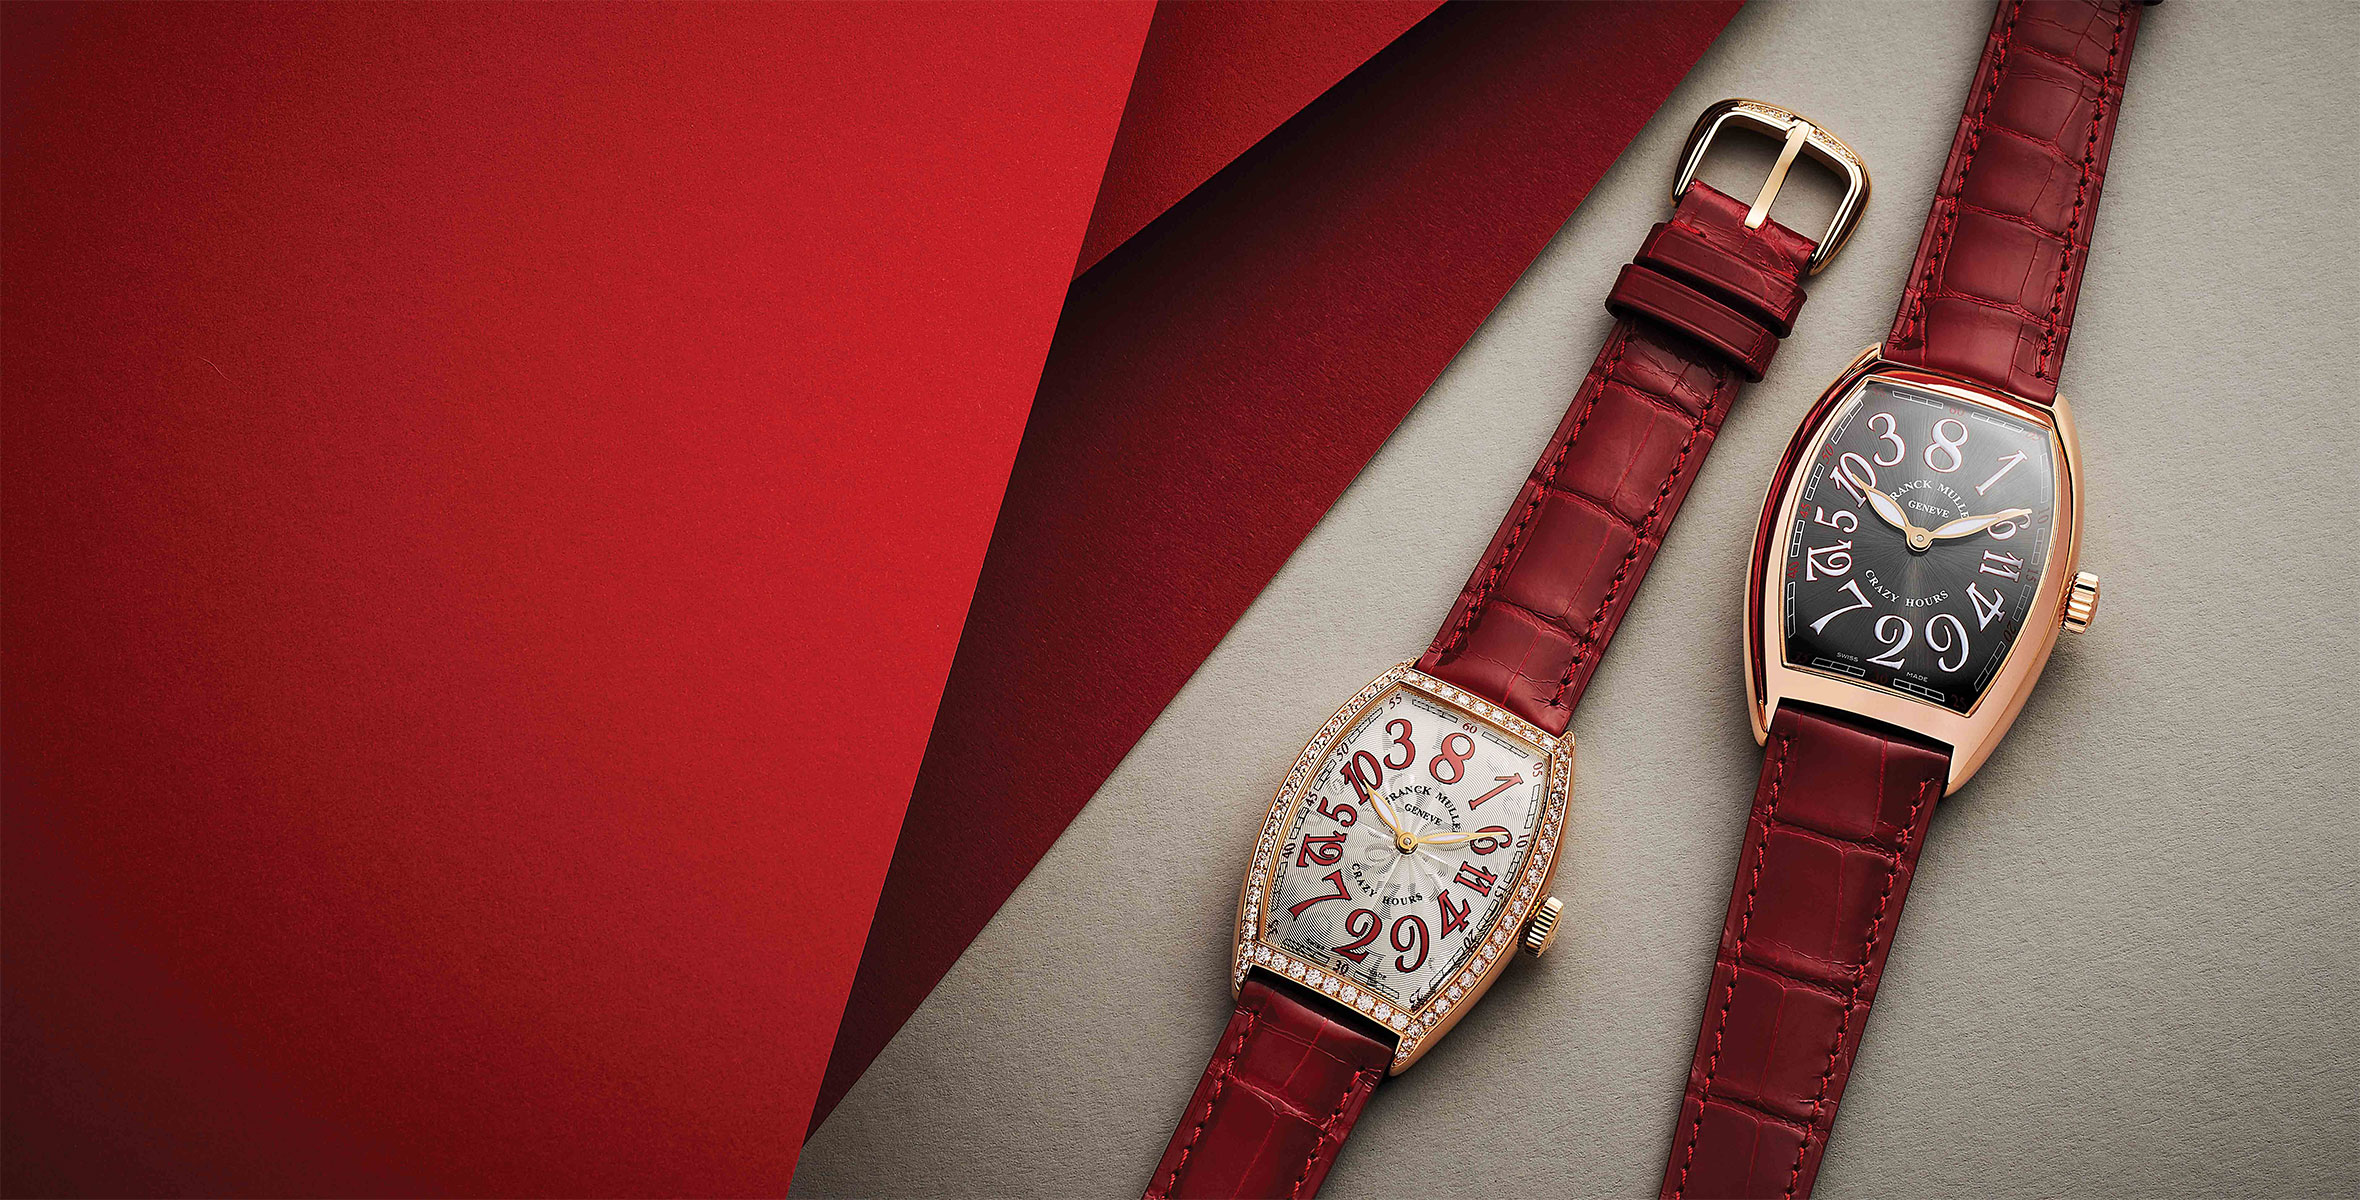 INTRODUCING: The Franck Muller Crazy Hours 15th Anniversary collection